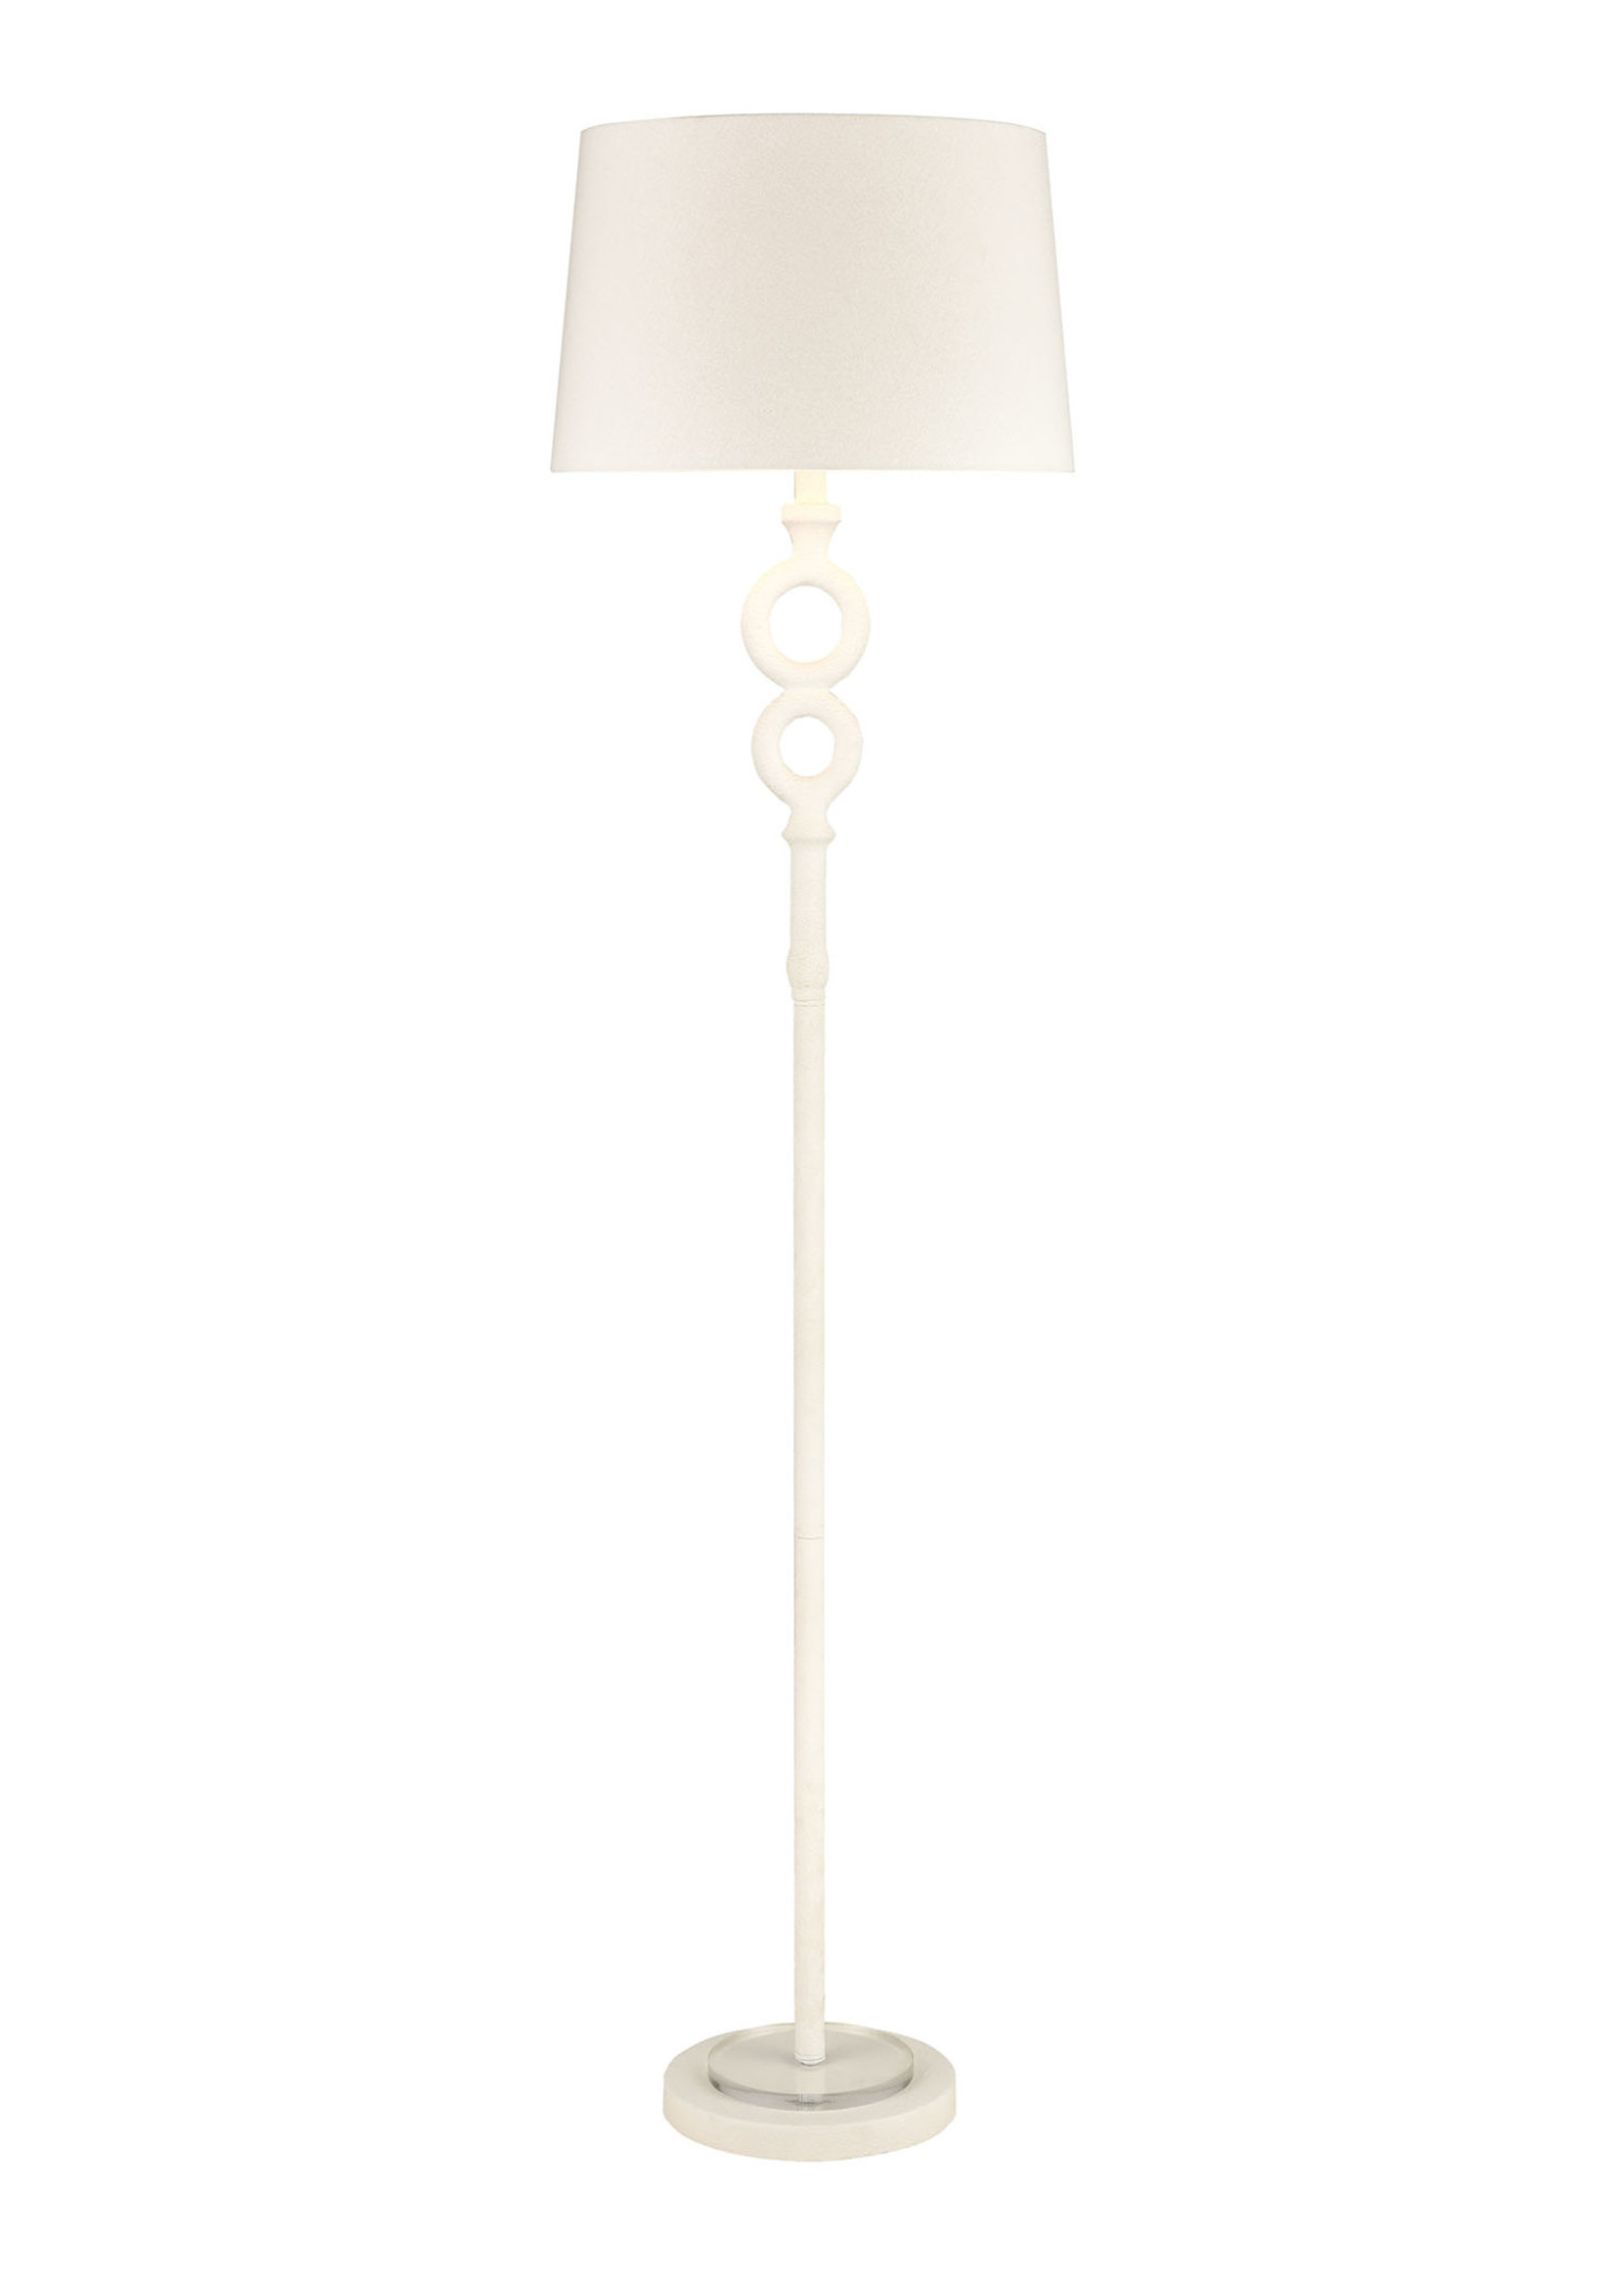 Hammered Home Floor Lamp